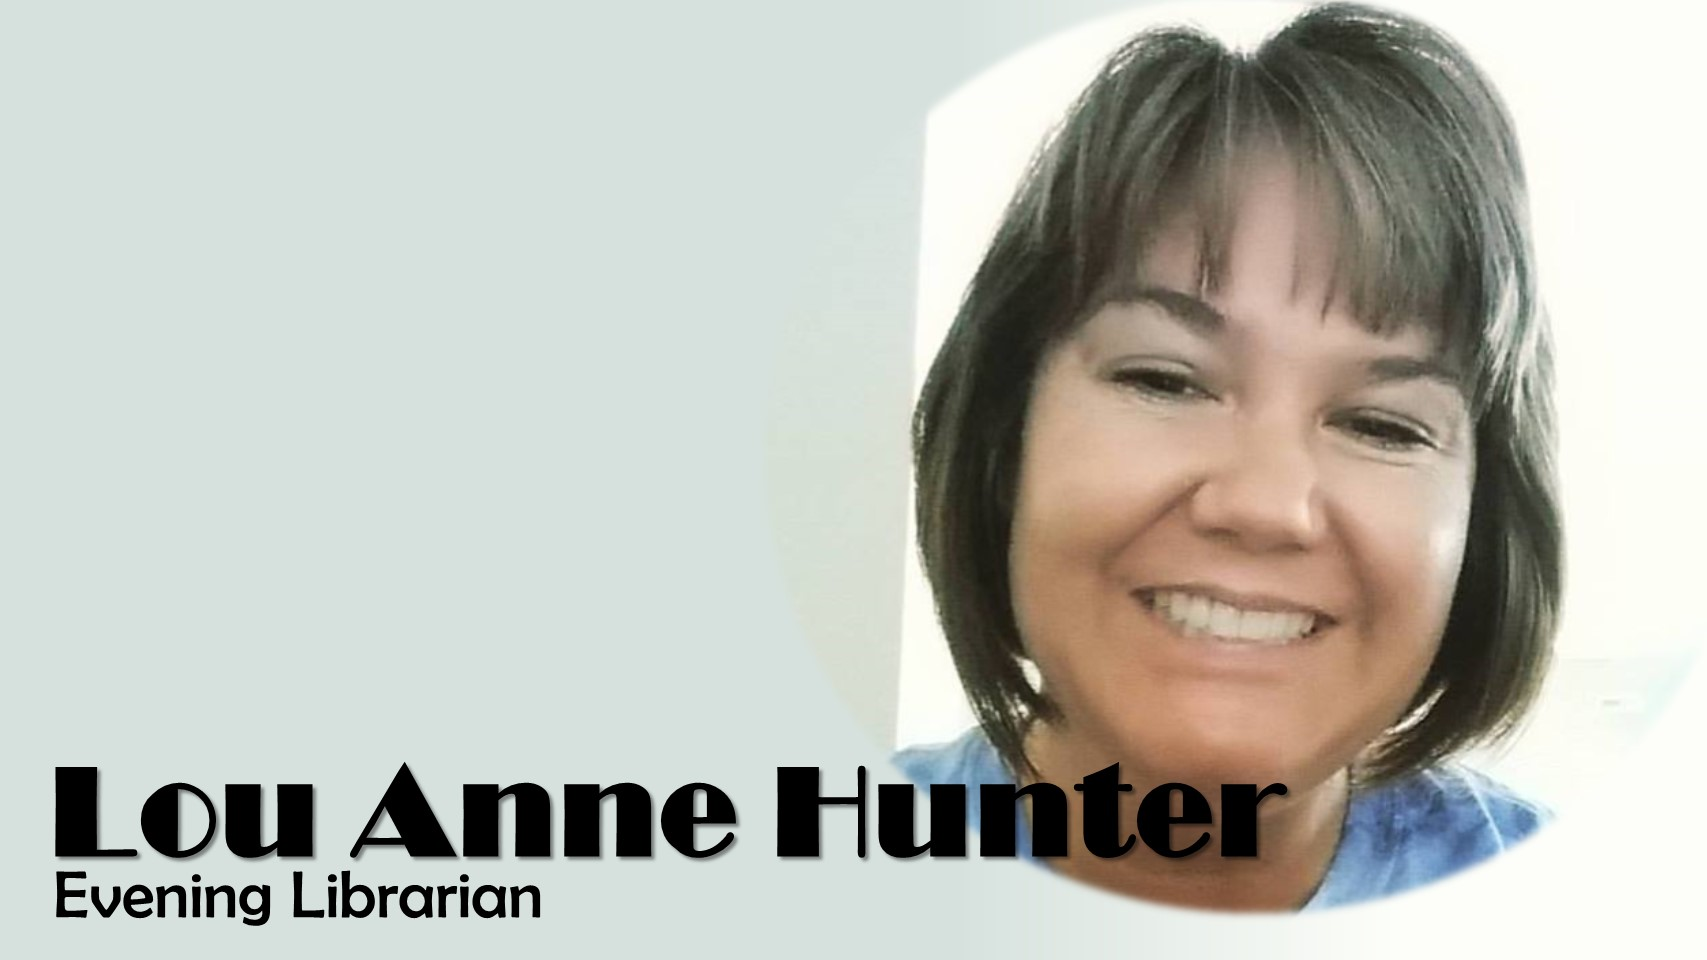 Lou Ann Hunter